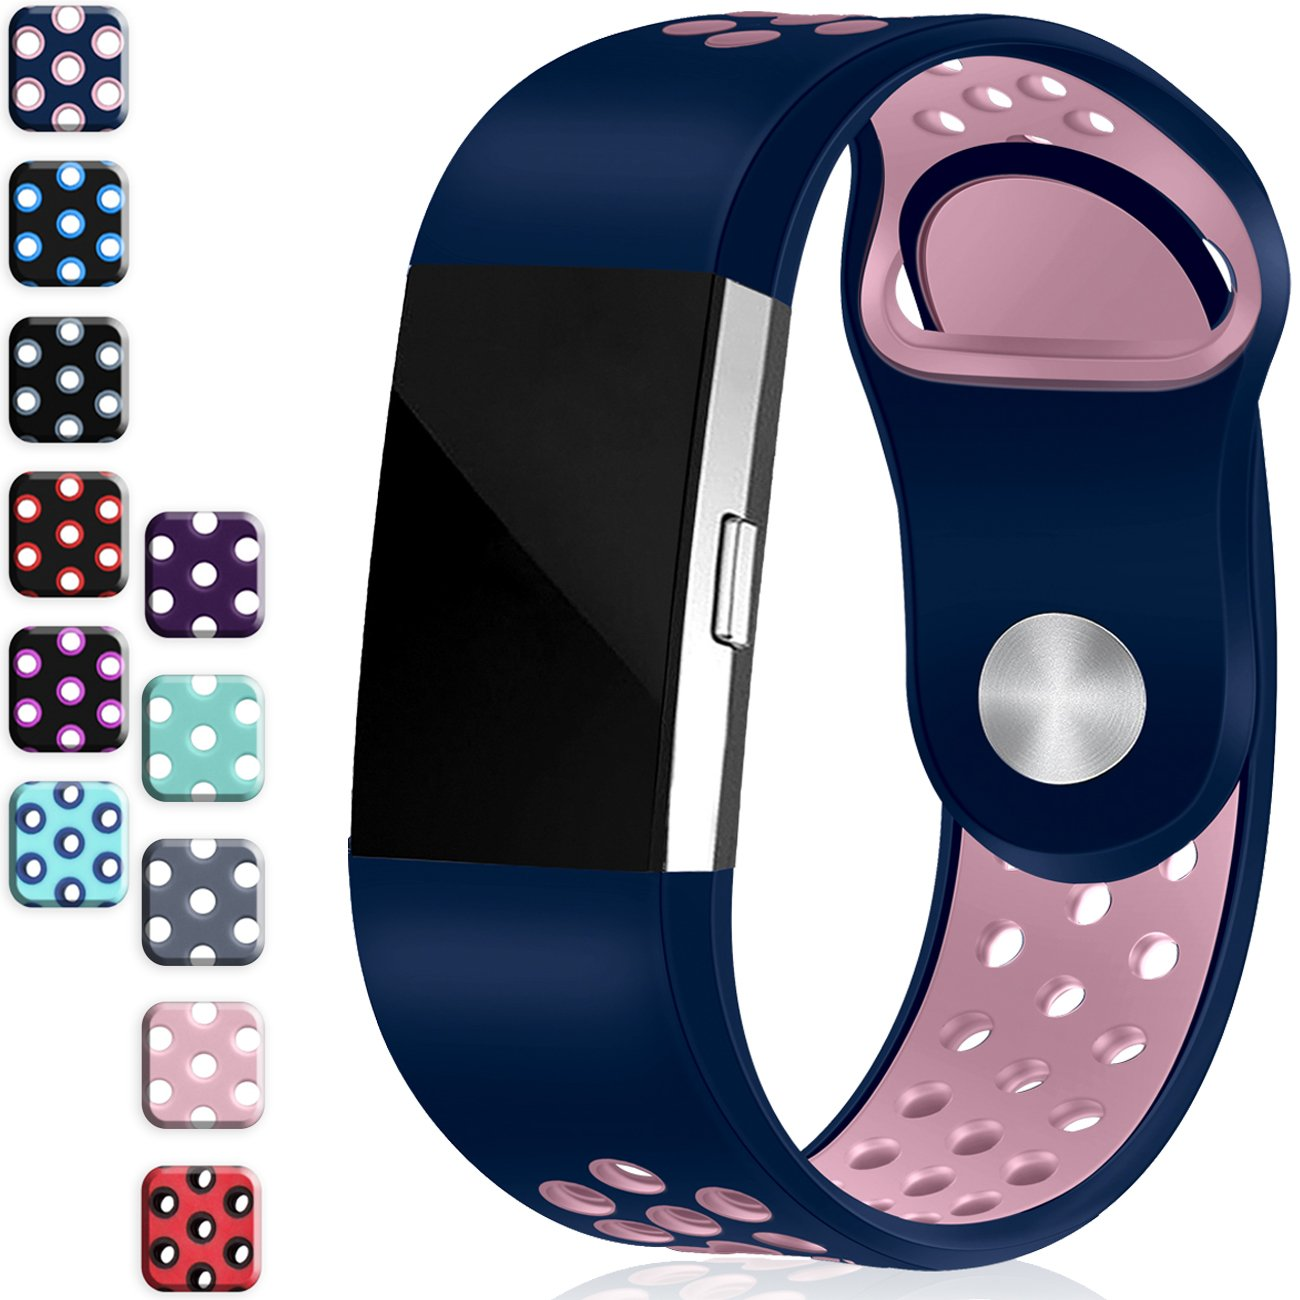 Wepro Fitbit Charge 2バンド、交換用for Fitbit Charge HR、バックル、15色、S、L 2 Large|#11-Blue Pink ( with air holes ) #11-Blue Pink ( with air holes ) Large B078W25MVC